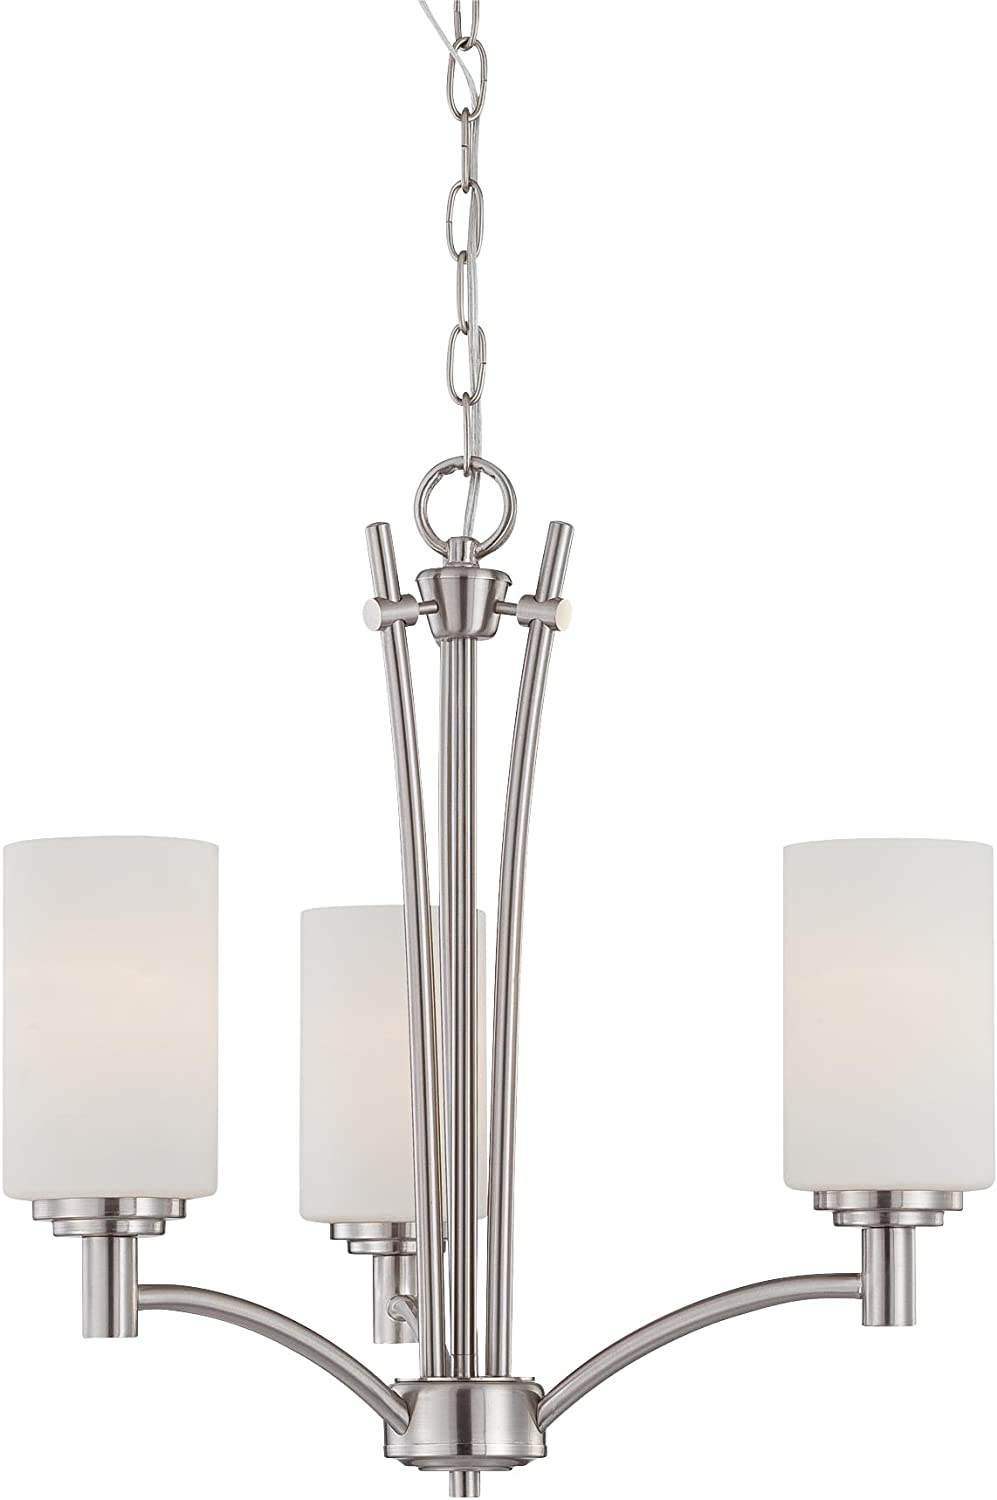 Thomas Lighting 190036117 Tia Chandelier Matte Nickel